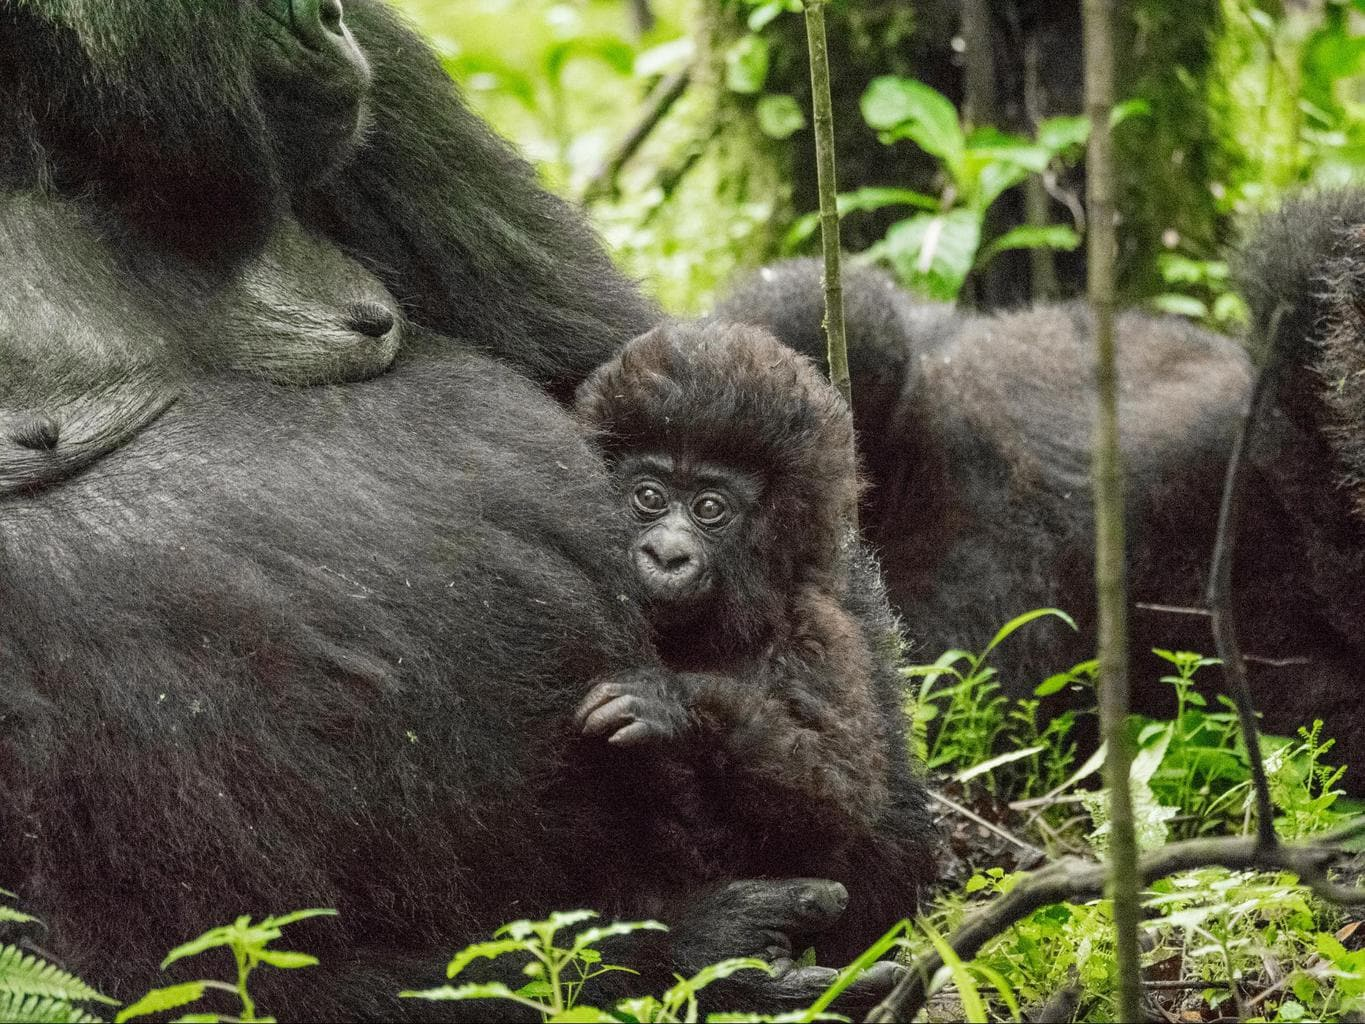 Baby gorilla and her mother